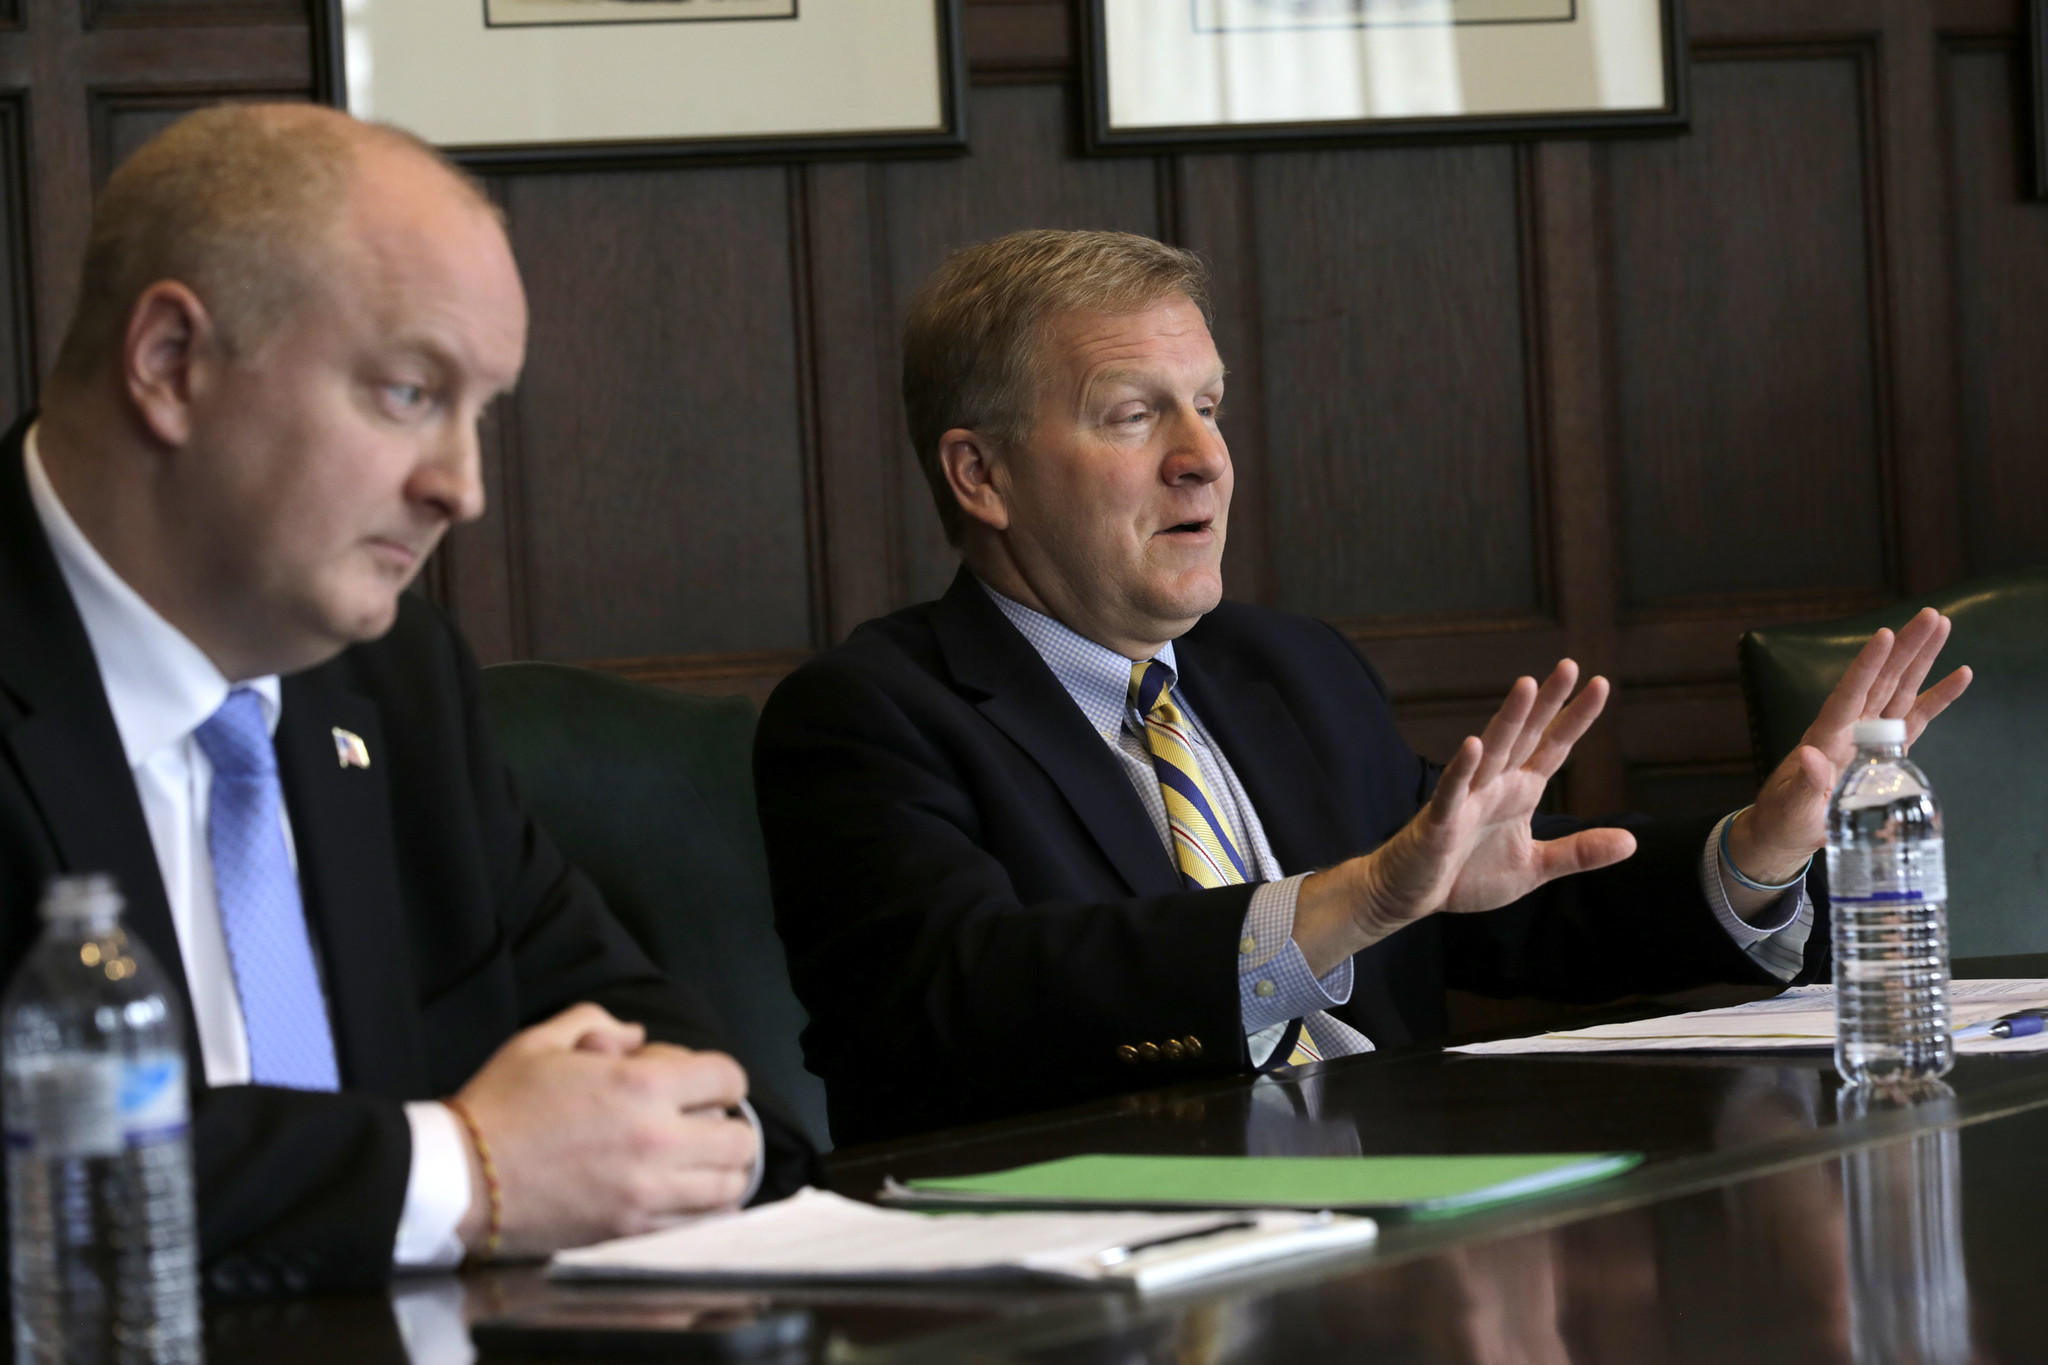 Republican candidates for Illinois Treasurer, DuPage County Auditor Bob Grogan, left, and State Rep. Tom Cross, meet with the Chicago Tribune Editorial Board on Feb. 13.